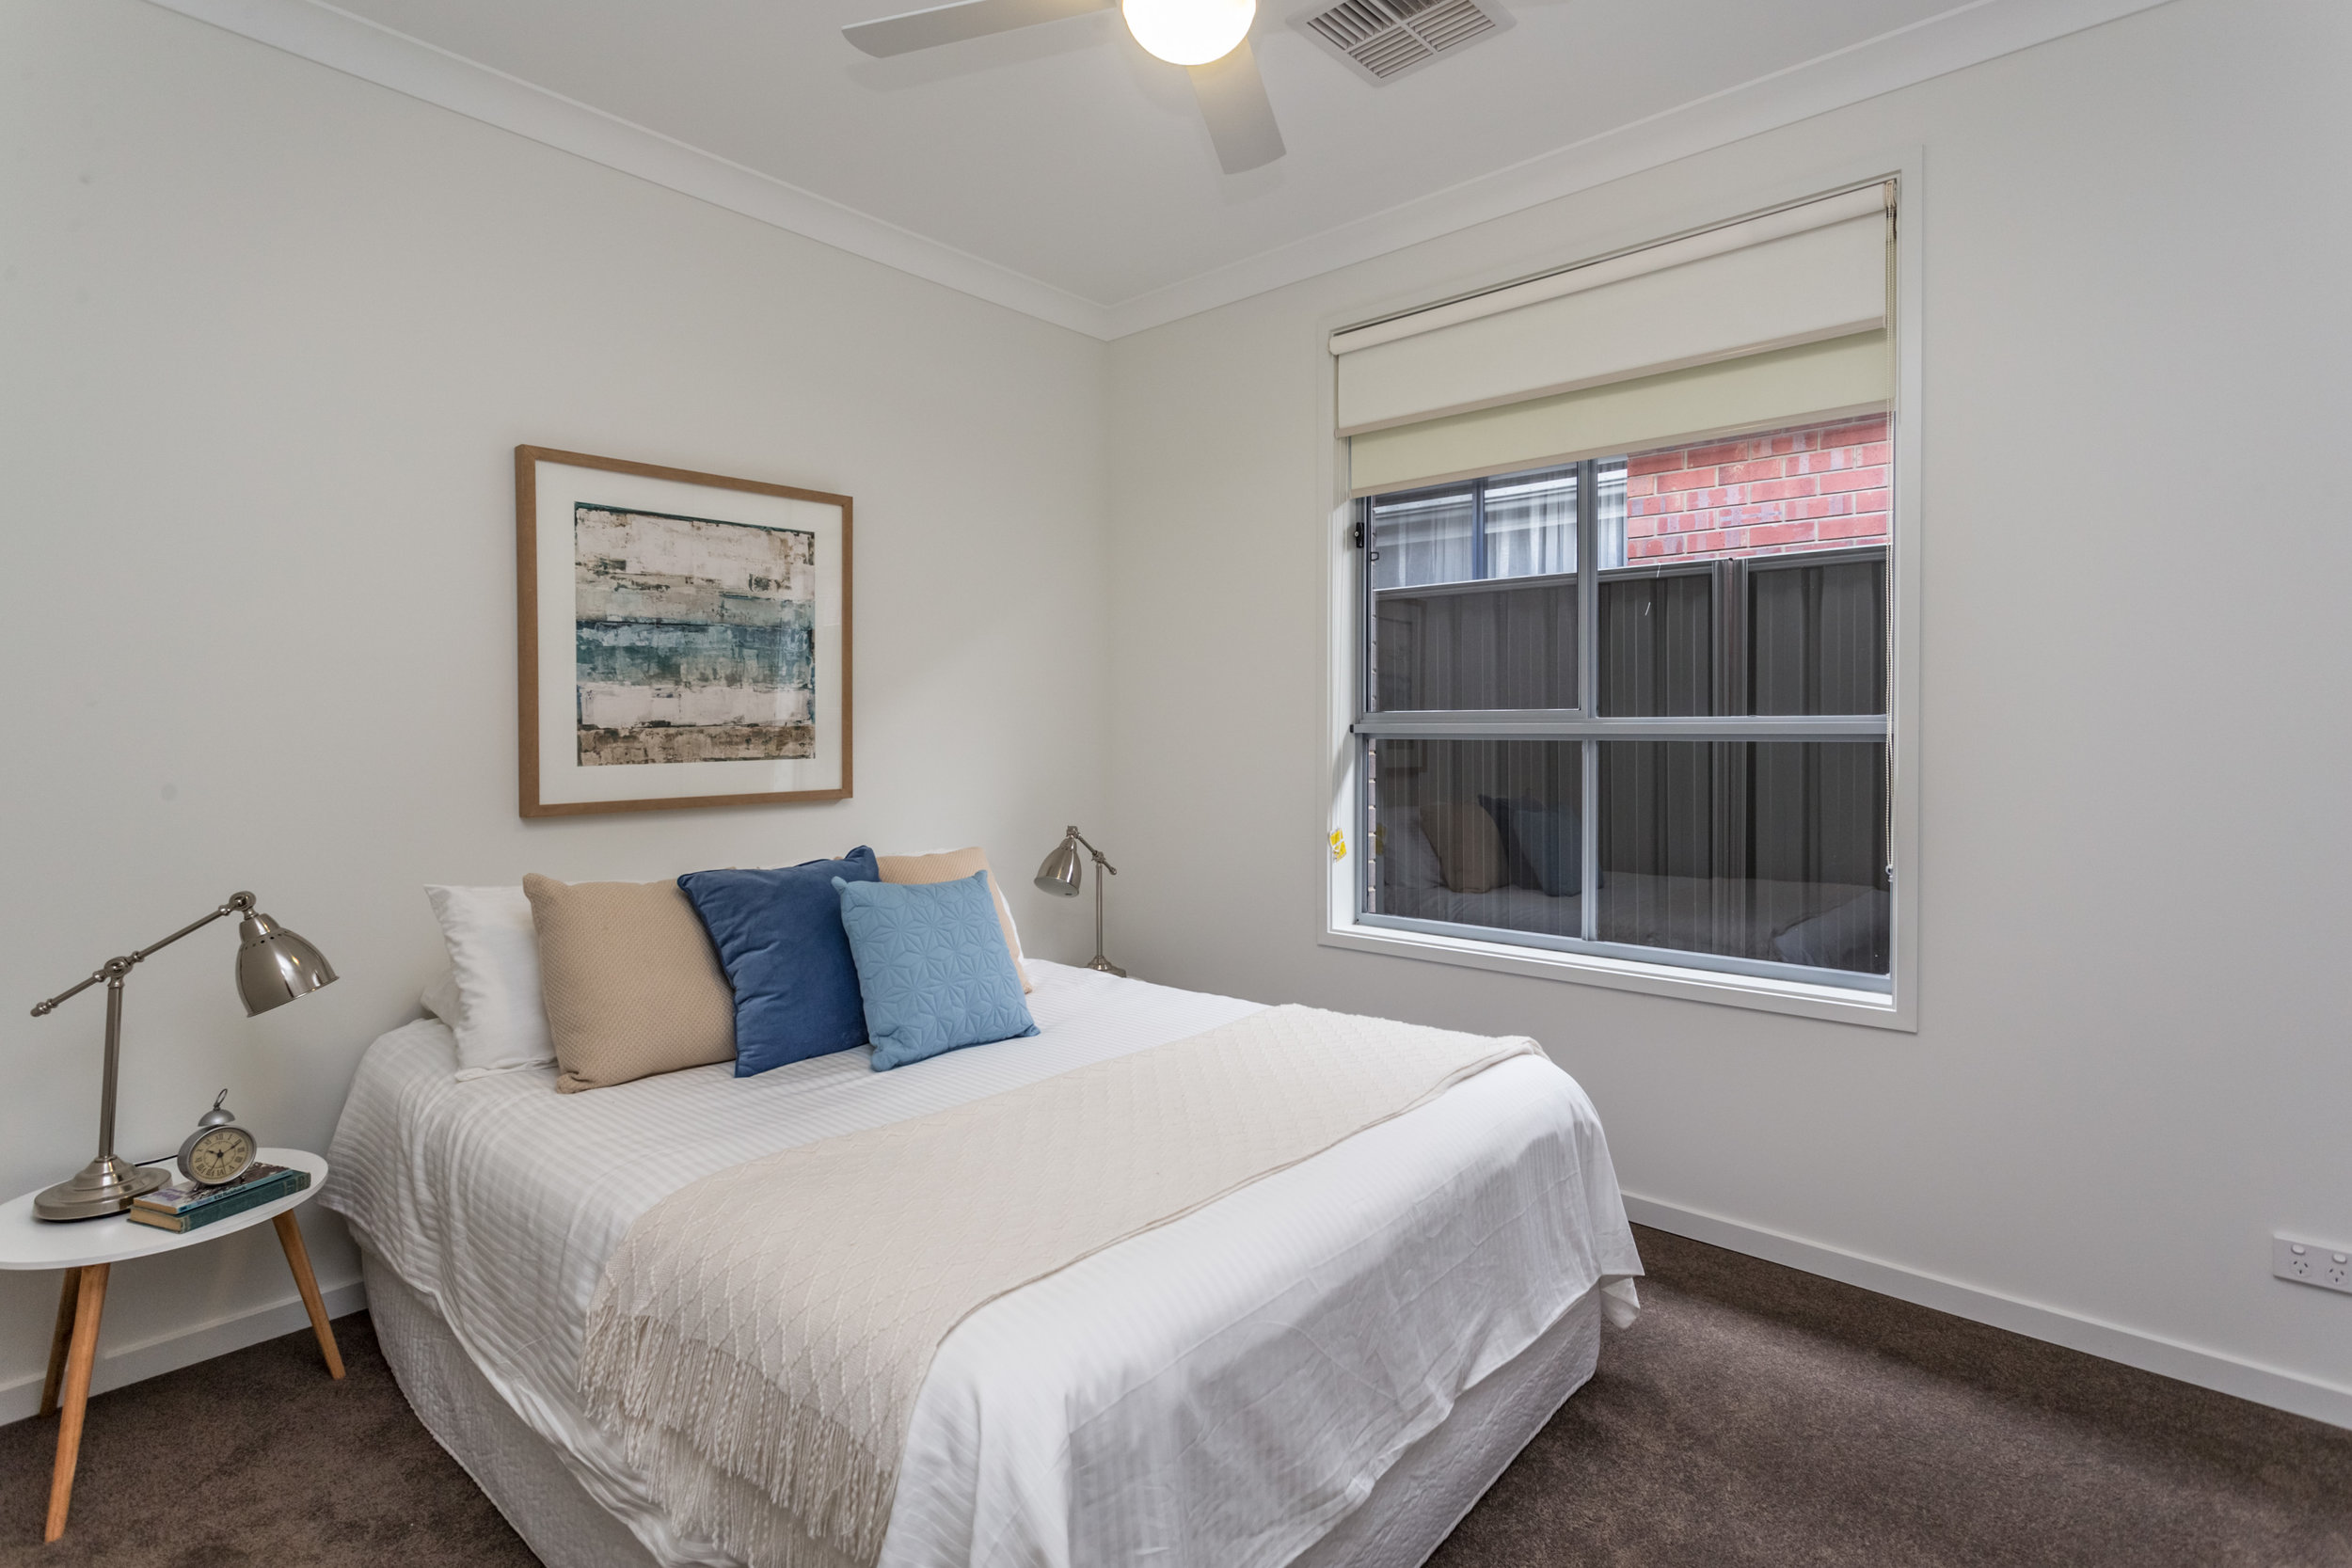 Second bedroom with built-in robe